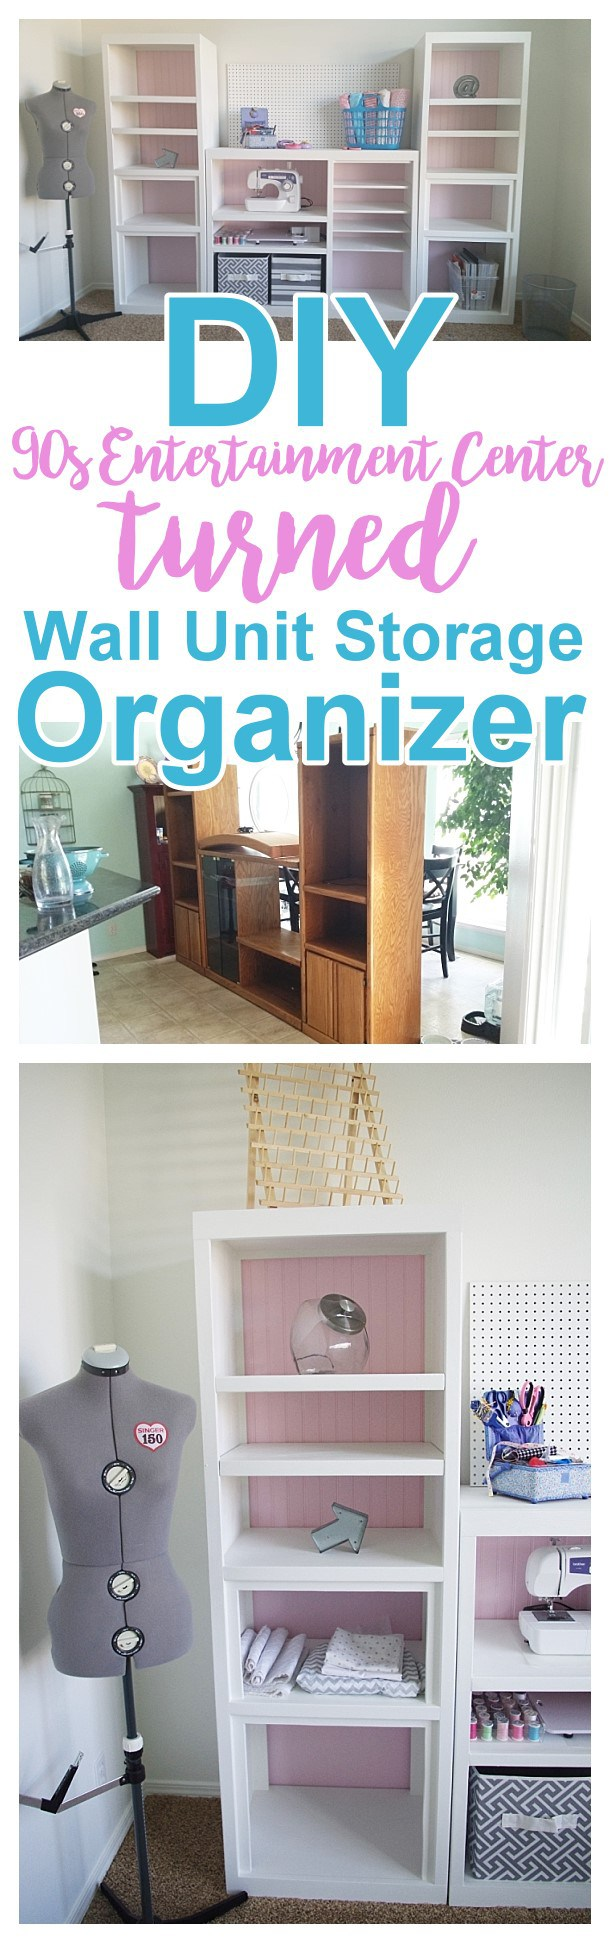 Diy craft room wall storage organizer unit furniture makeover diy 90s ugly oak entertainment center turned pretty craft storage organizer wall unit furniture makeover do it yourself project tutorial solutioingenieria Image collections